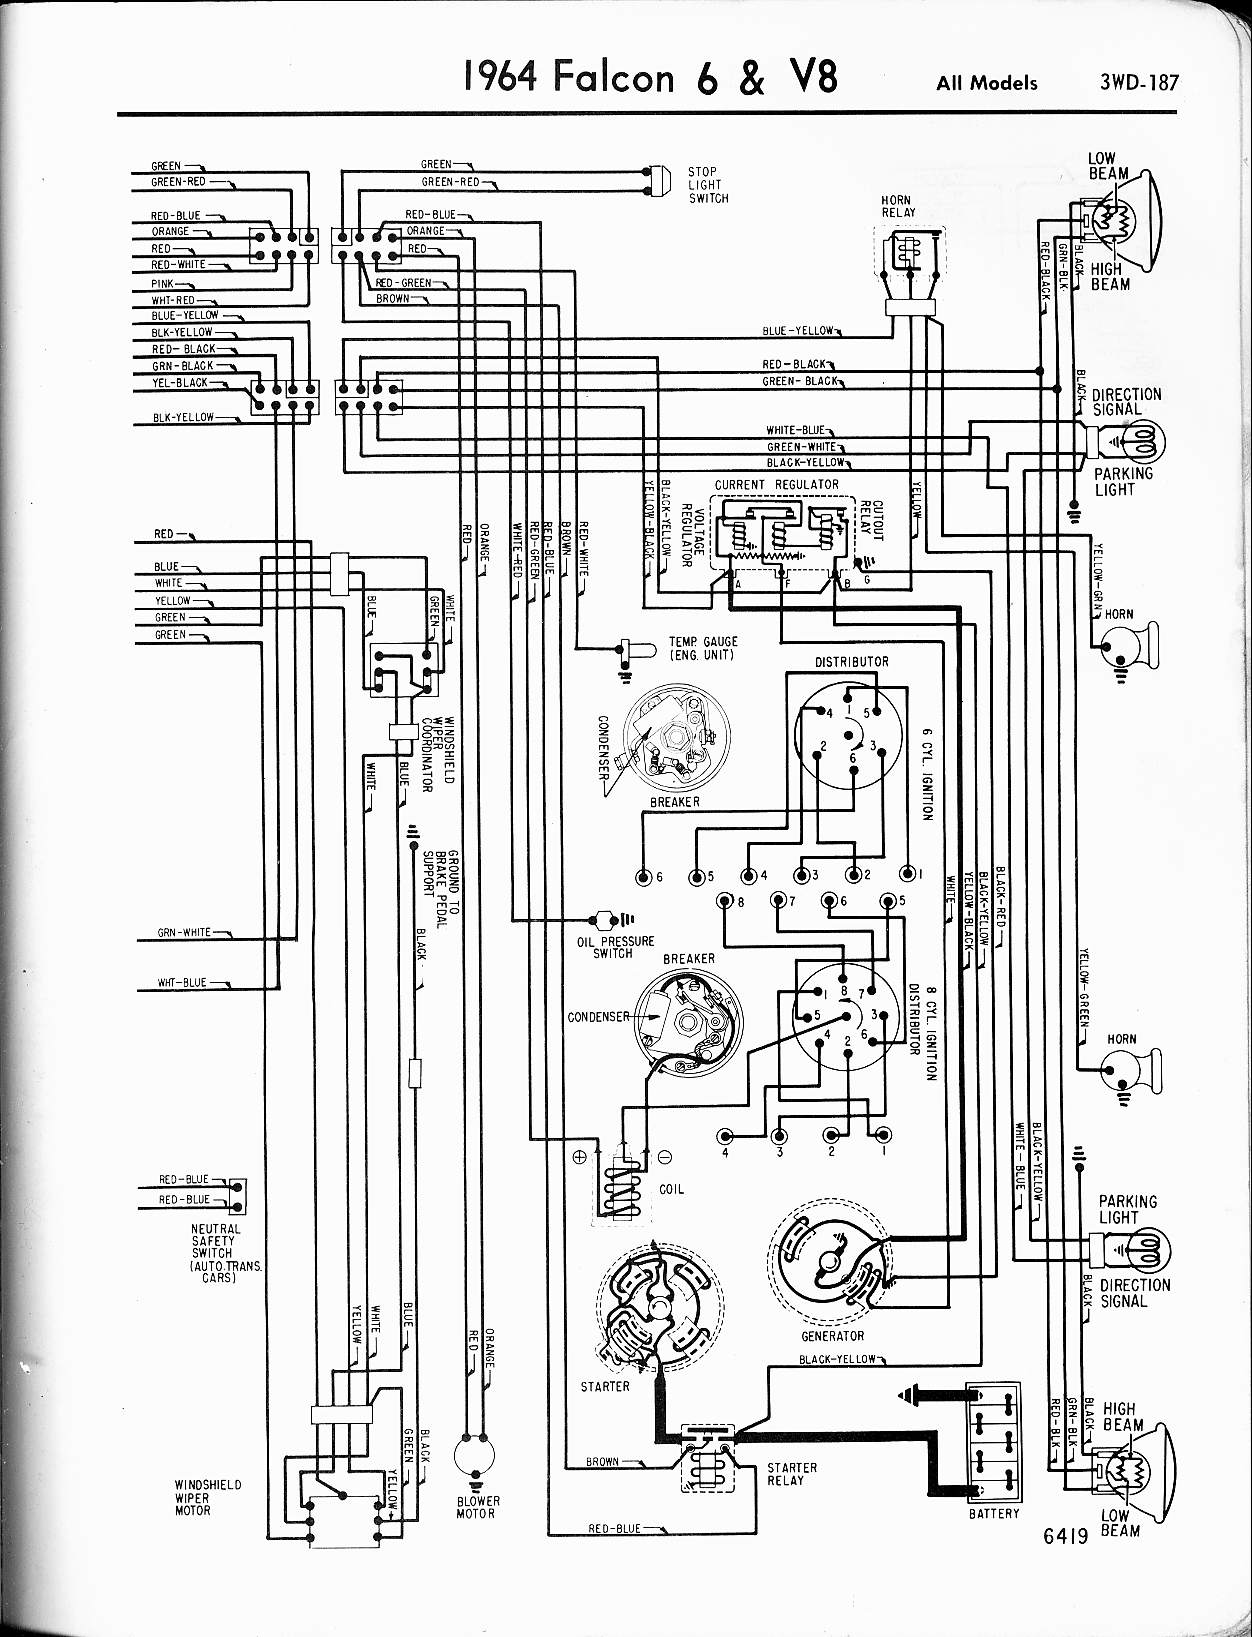 1964 falcon wiring diagram 1964 falcon wiring  diagram